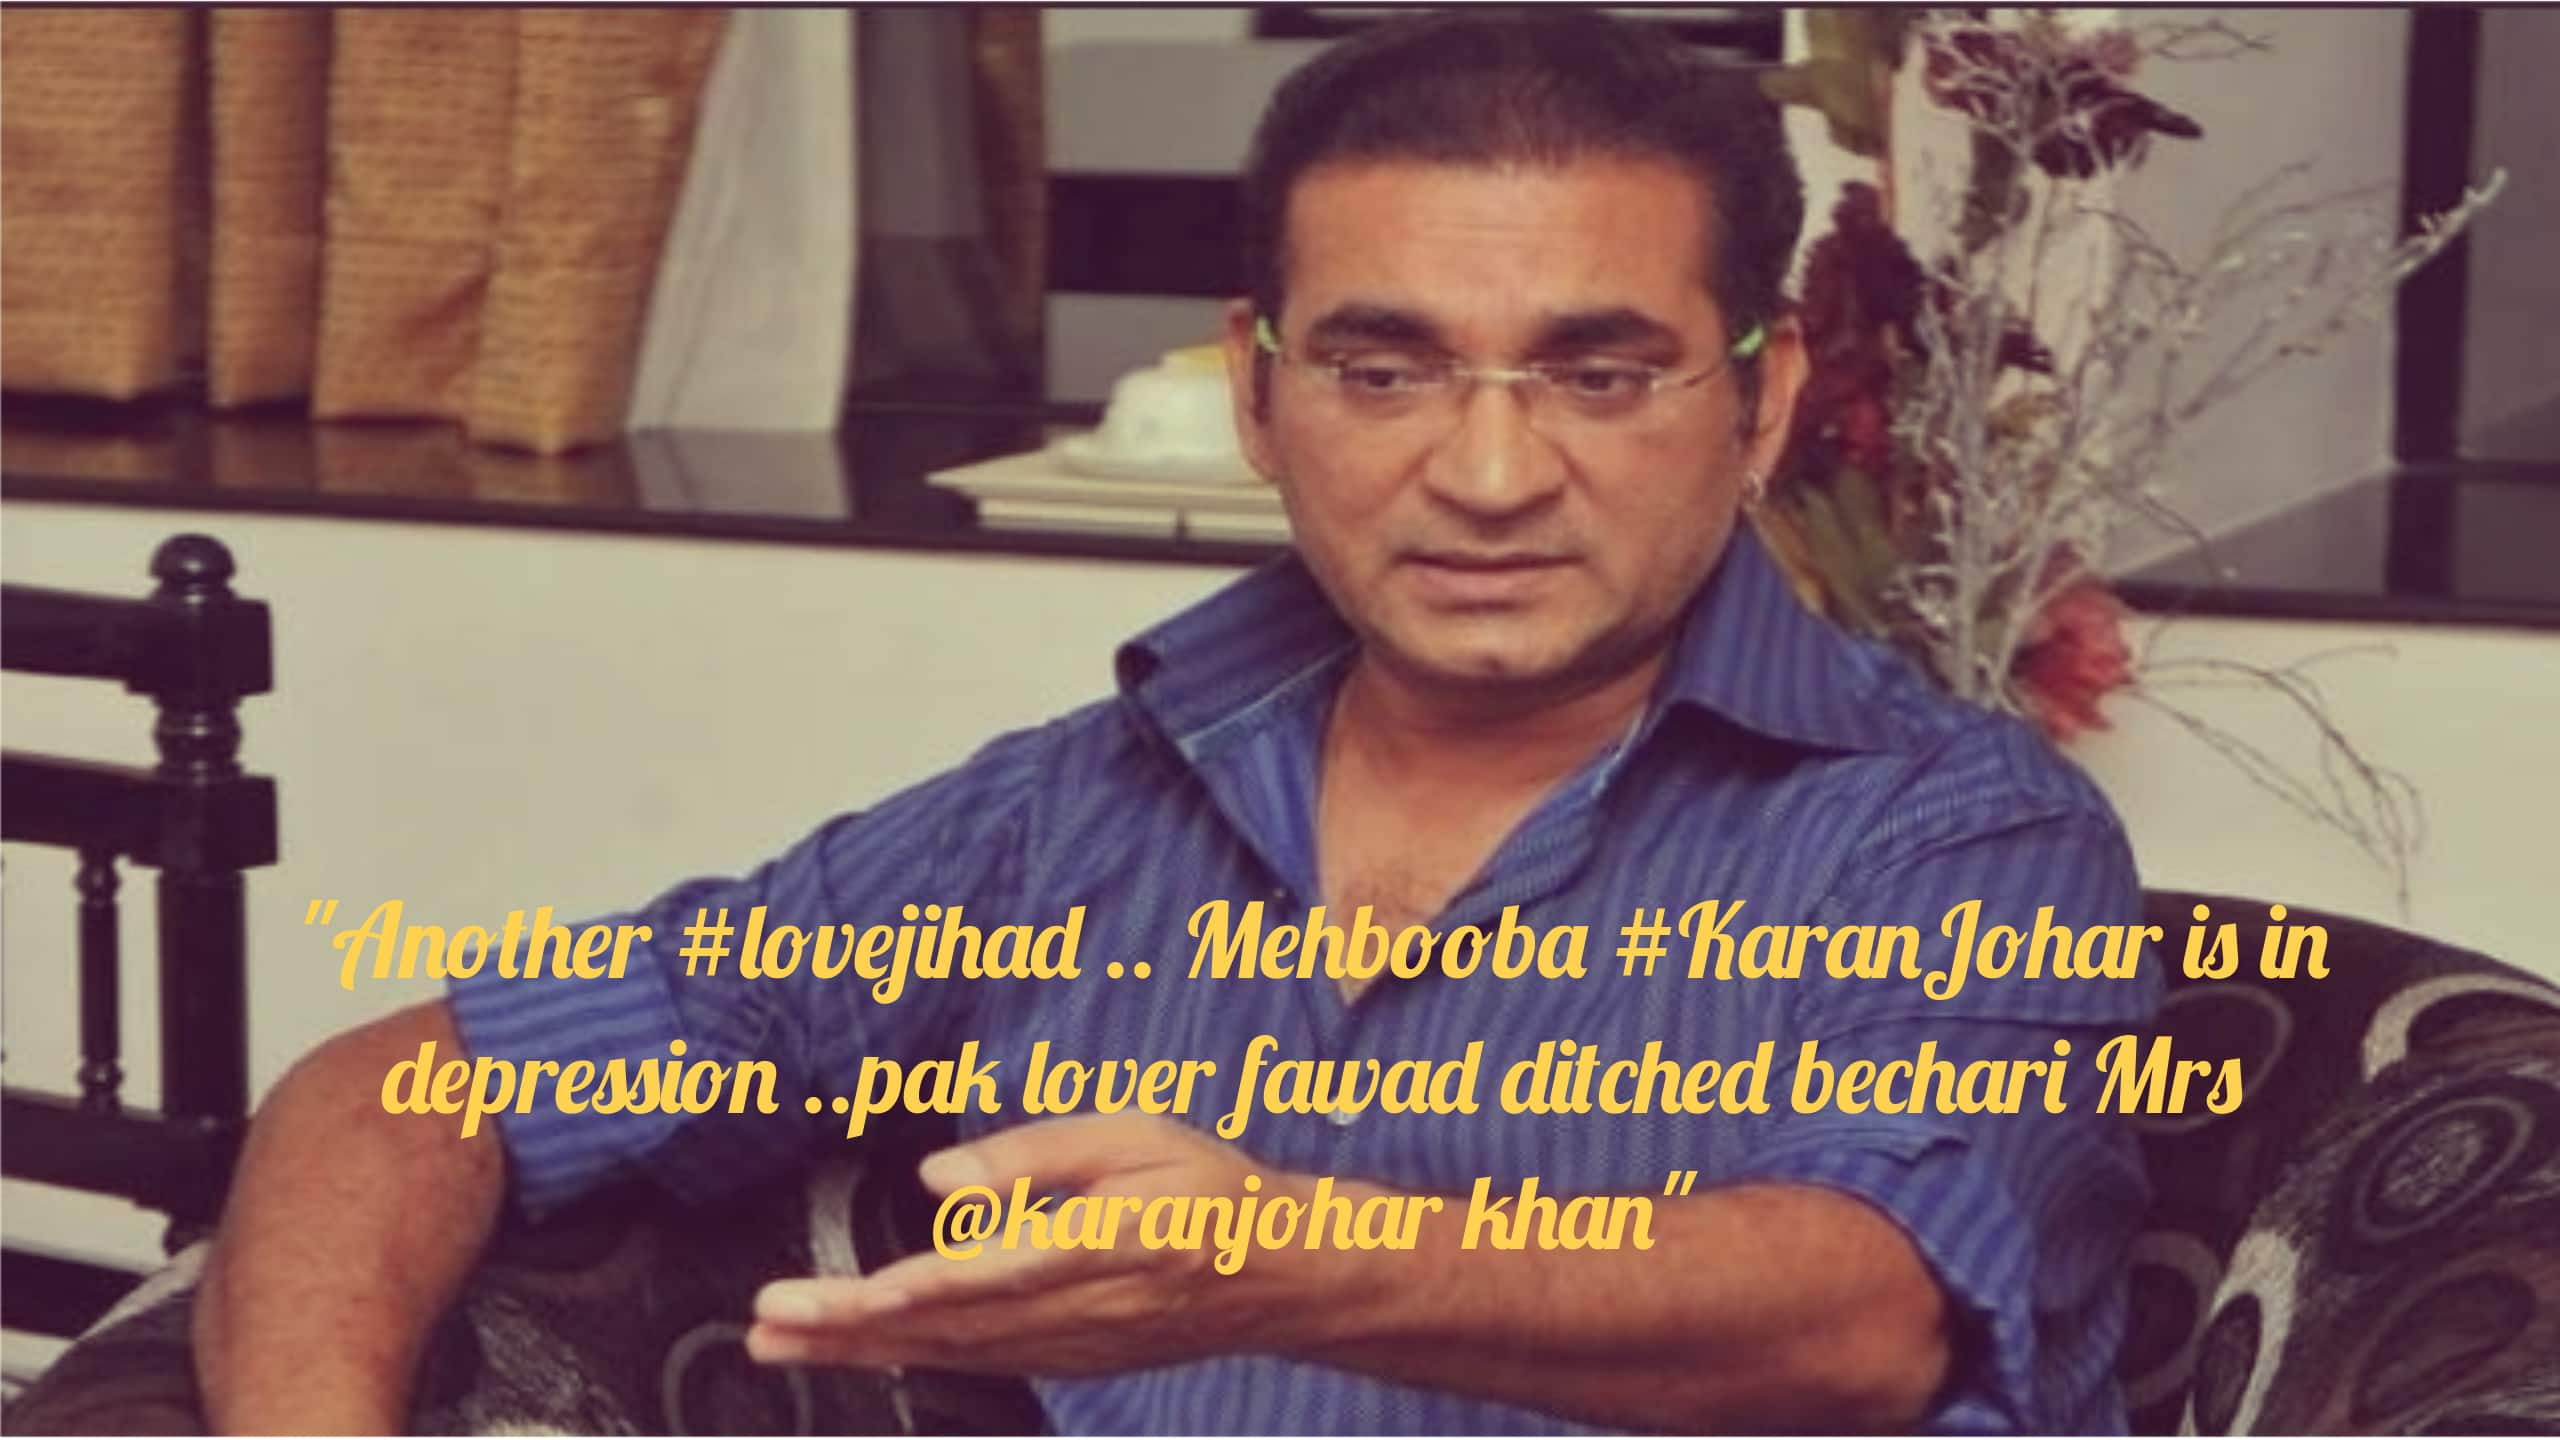 These Golden Words By Singer Abhijeet Bhattacharya Is Ruining Our Fond Memories Of His Songs